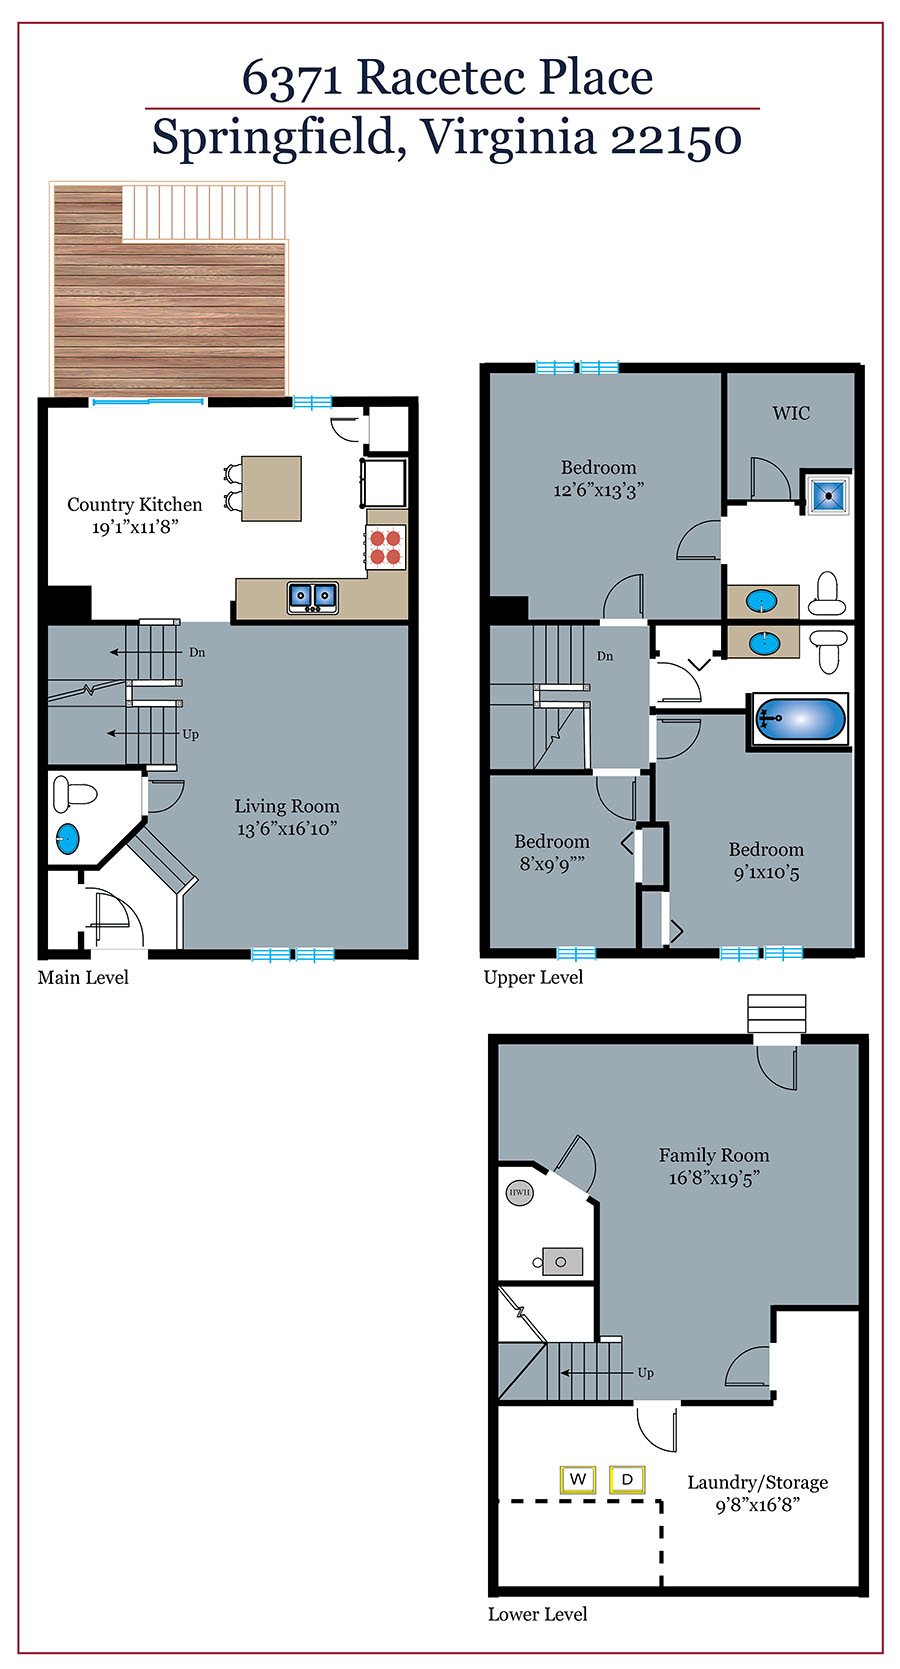 333_floorplan_level-web Racetec Springfield Real Estate Listings - Best of Northern Virginia